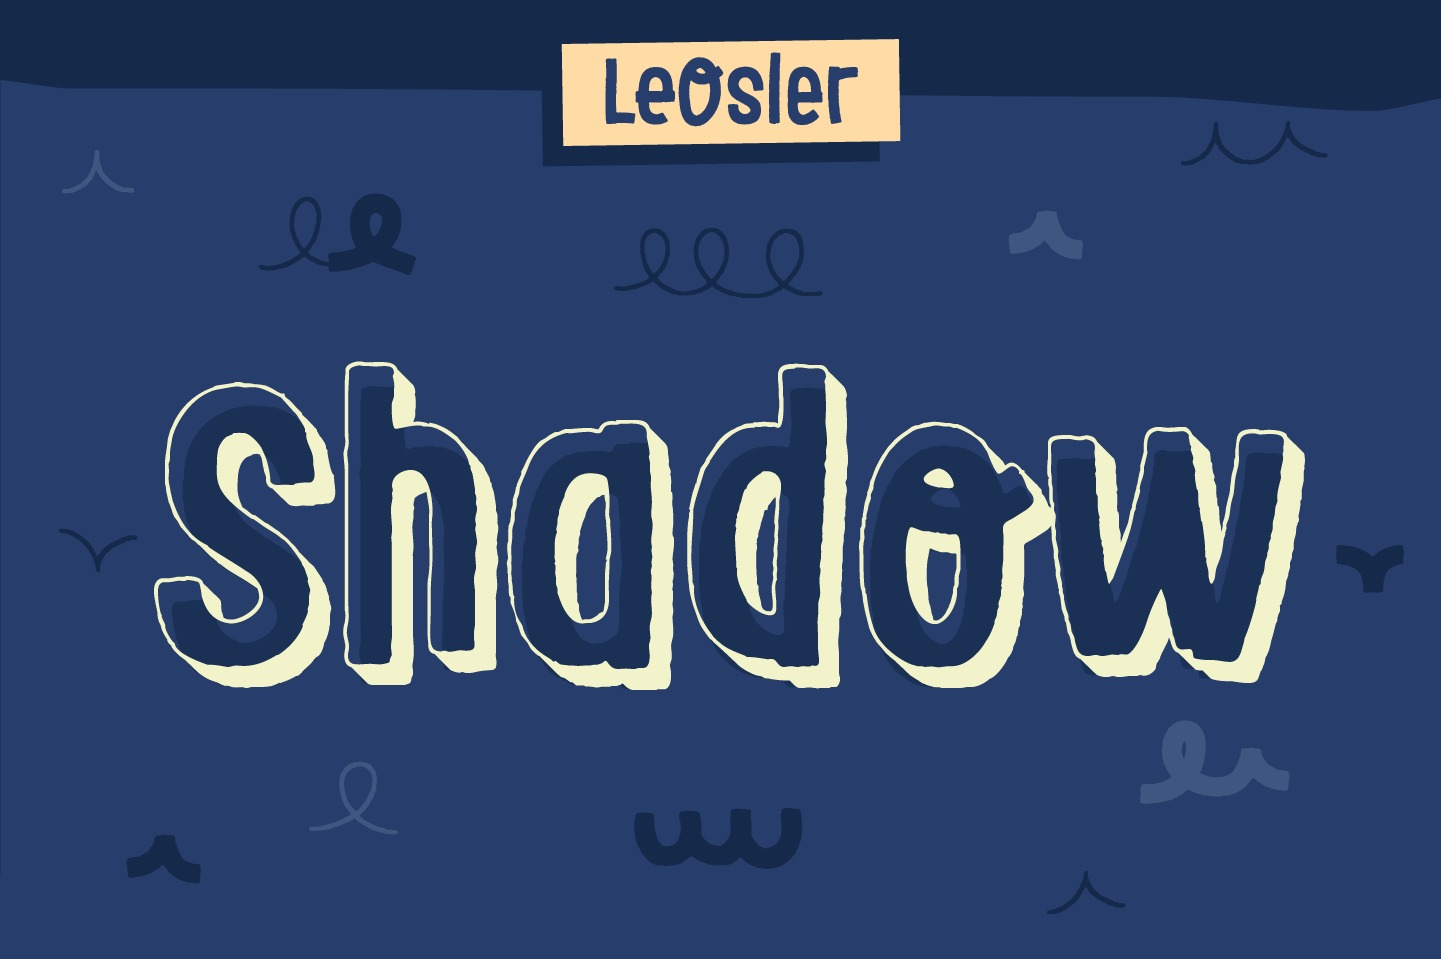 LeOsler Shadow